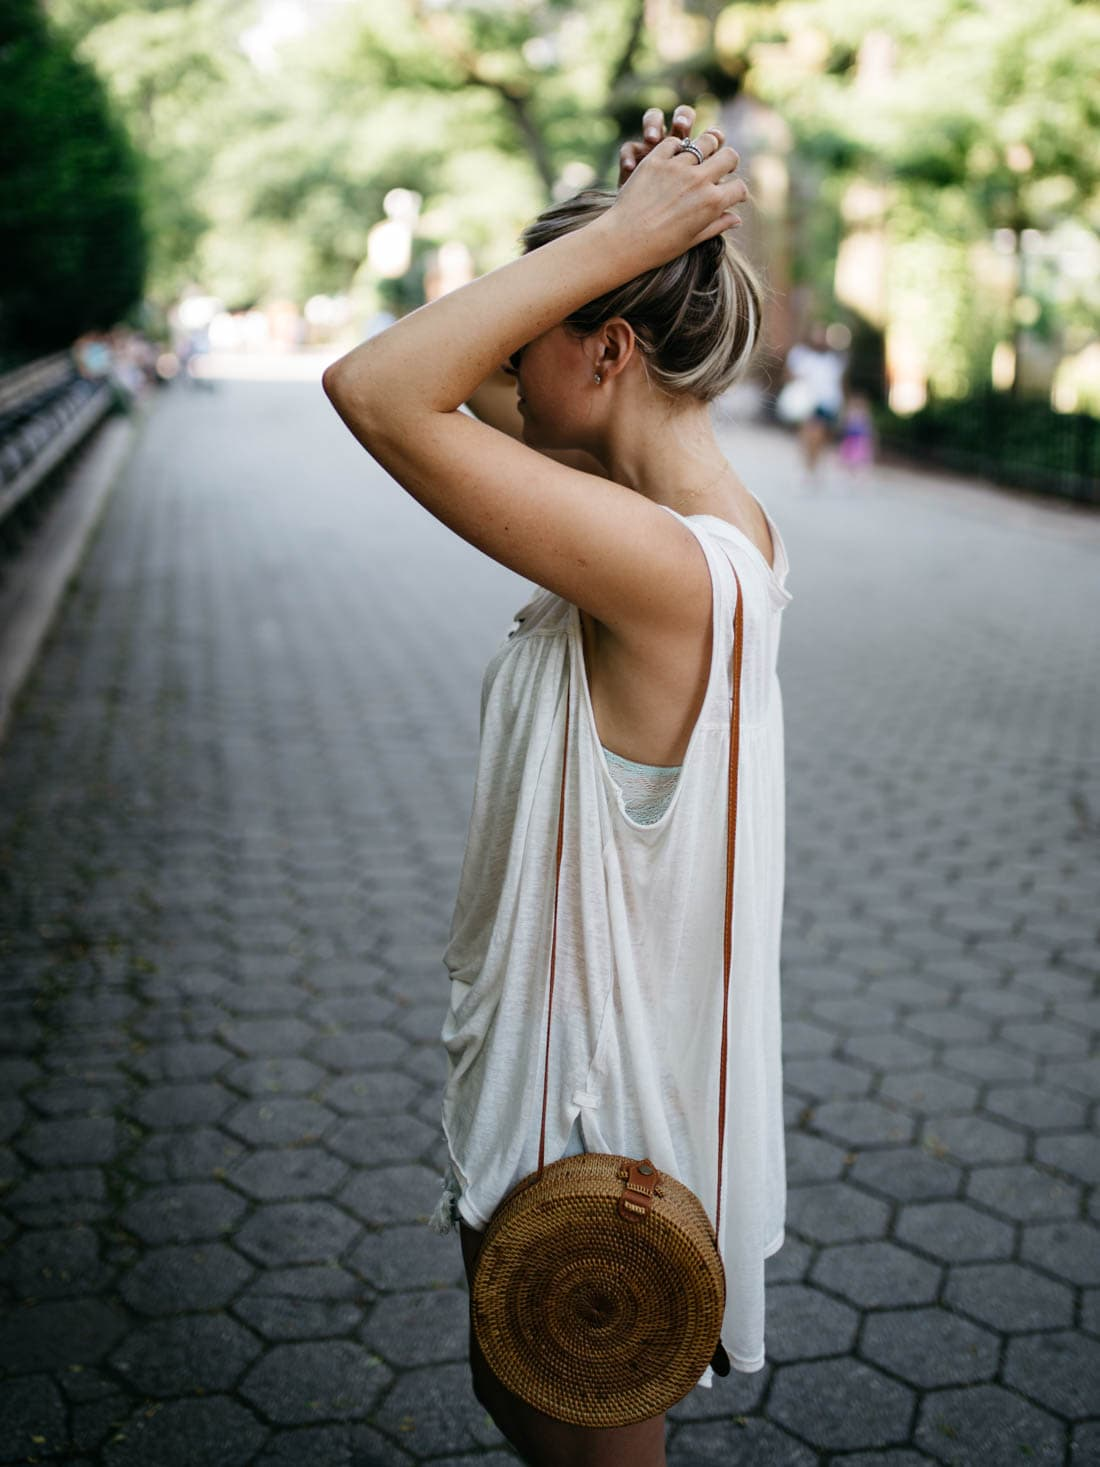 The Sol Round straw rattan bamboo bag